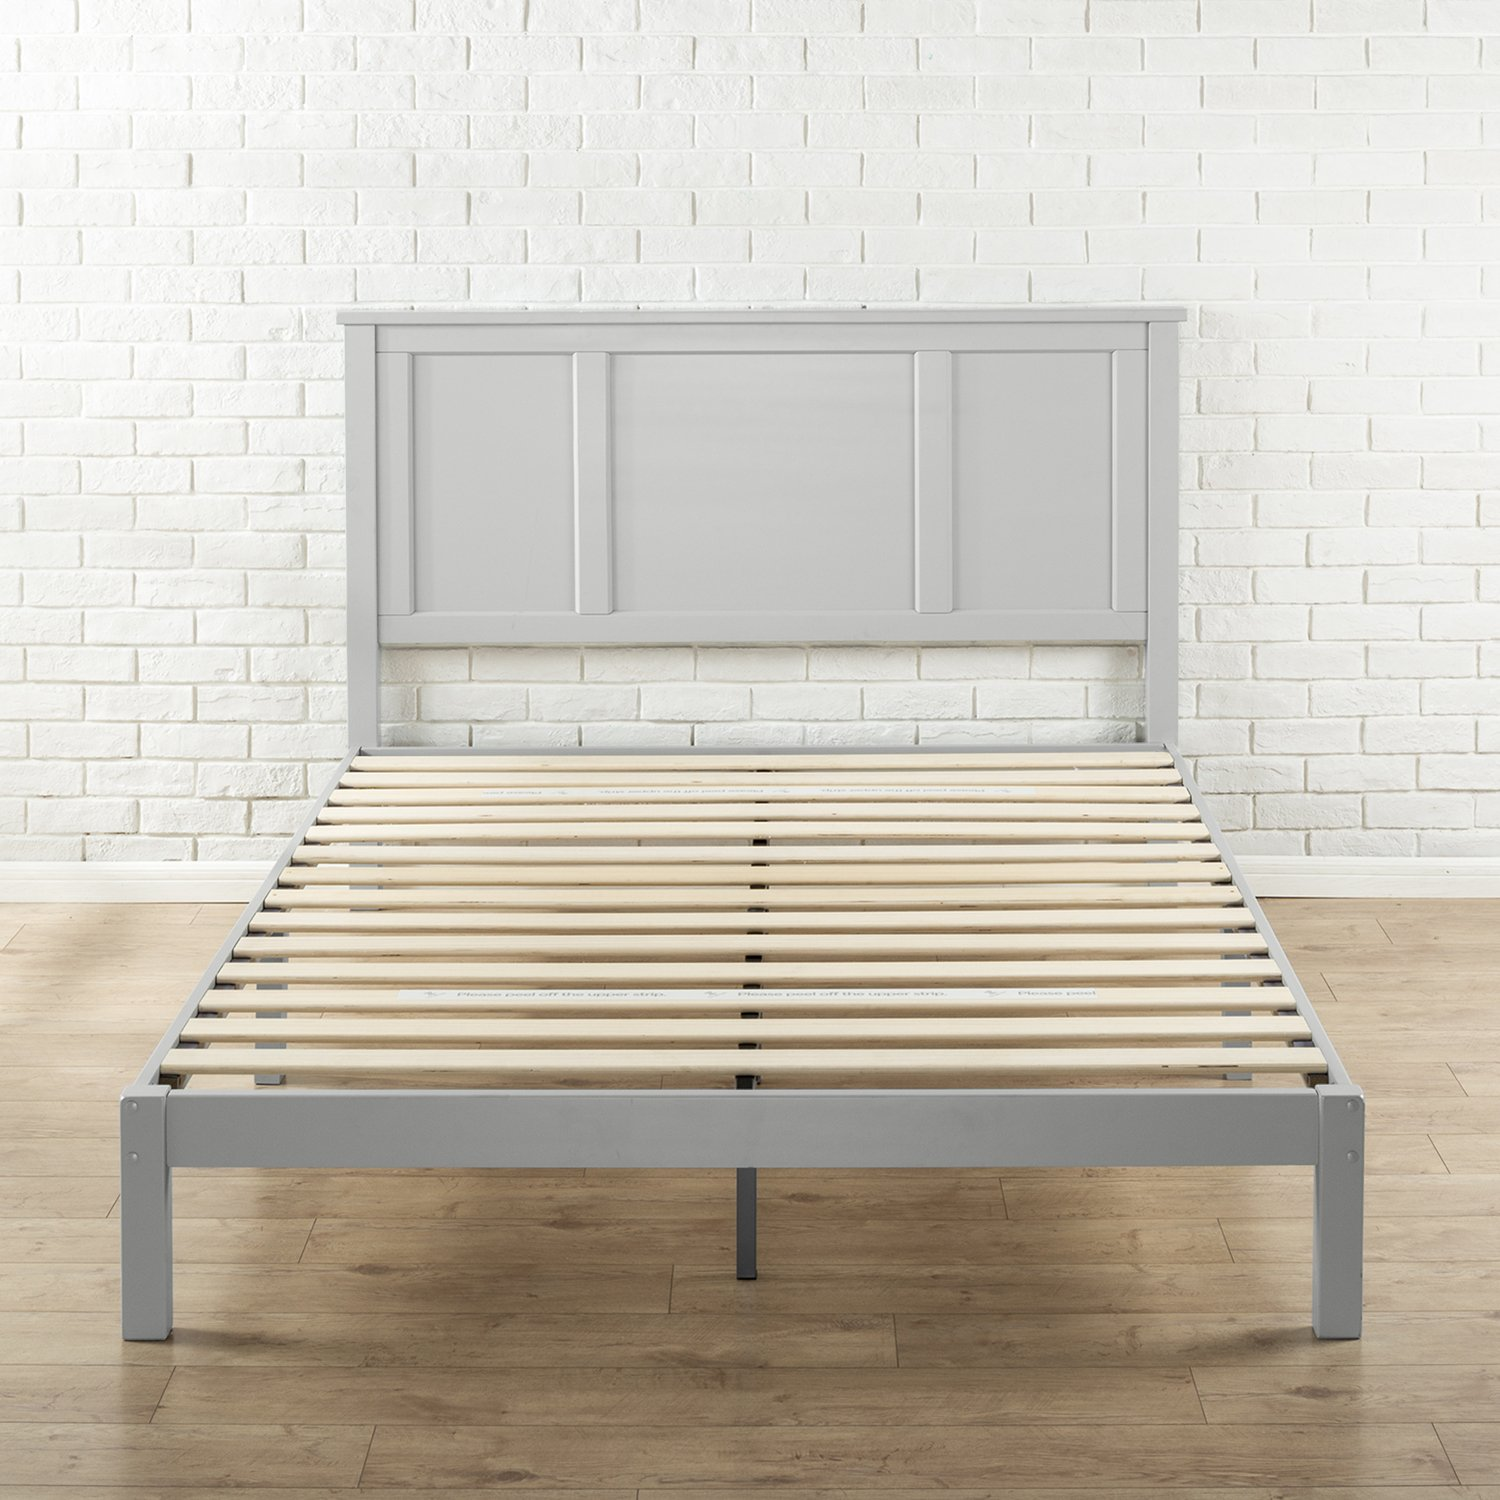 Zinus Andrew Wood Country Style Platform Bed With Headboard No Box Spring Needed Wood Slat Support Twin